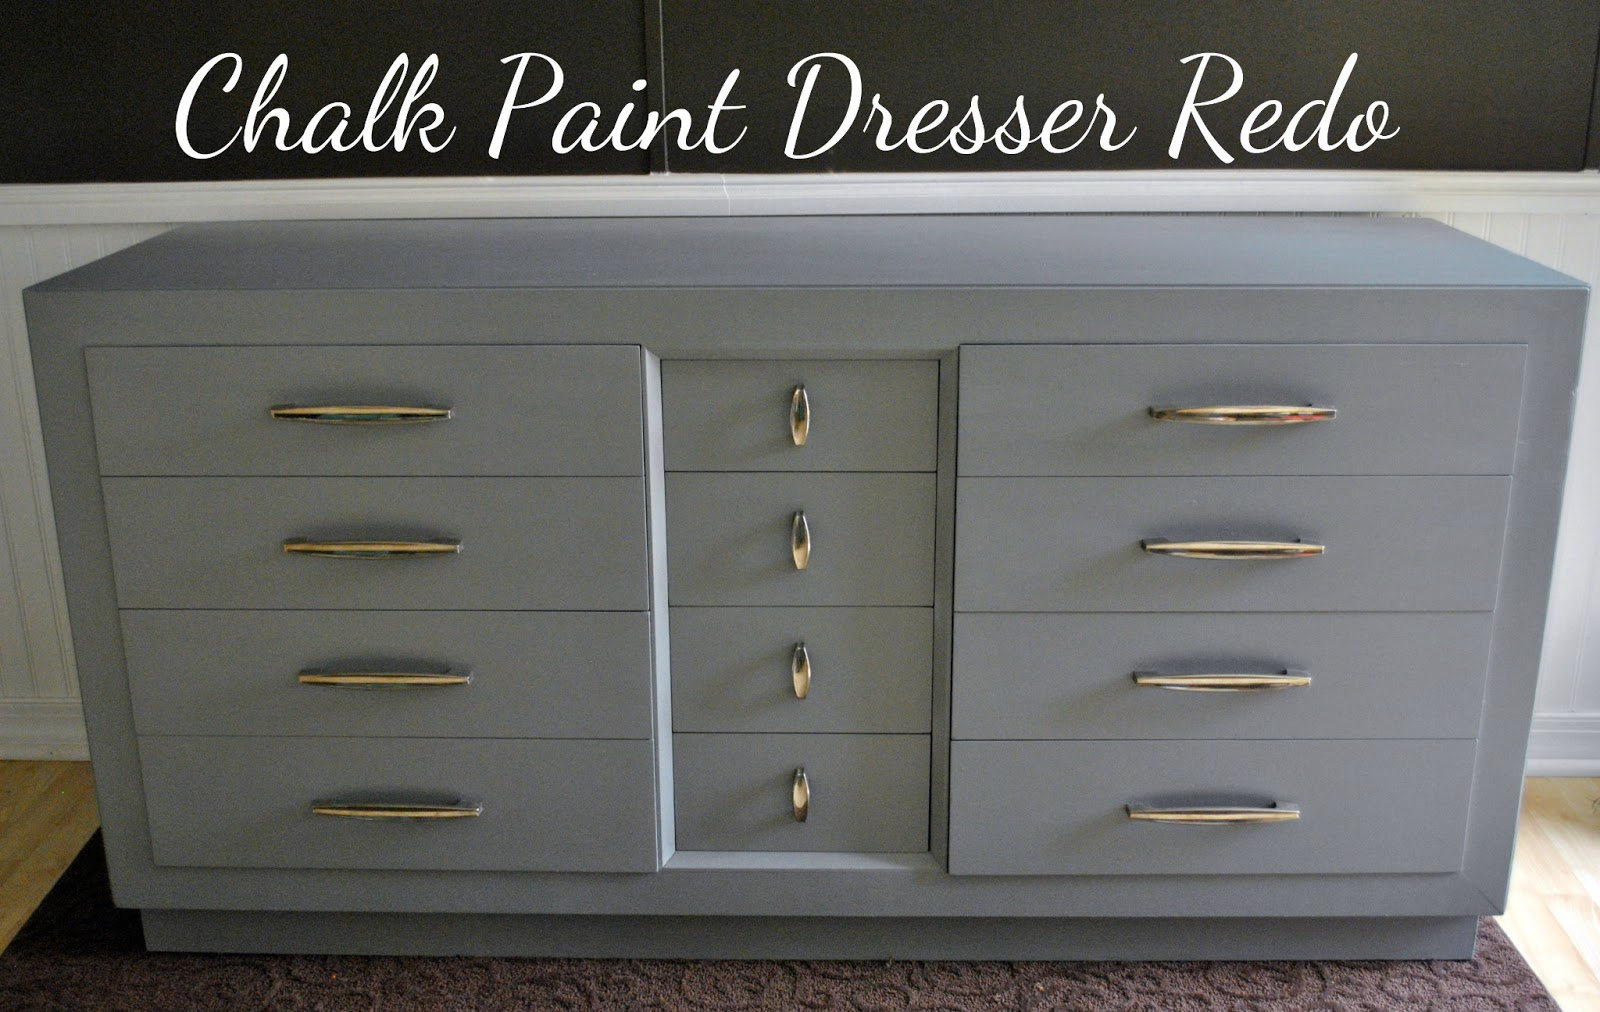 Dressers painted with chalk paint bestdressers 2017 for Redo furniture